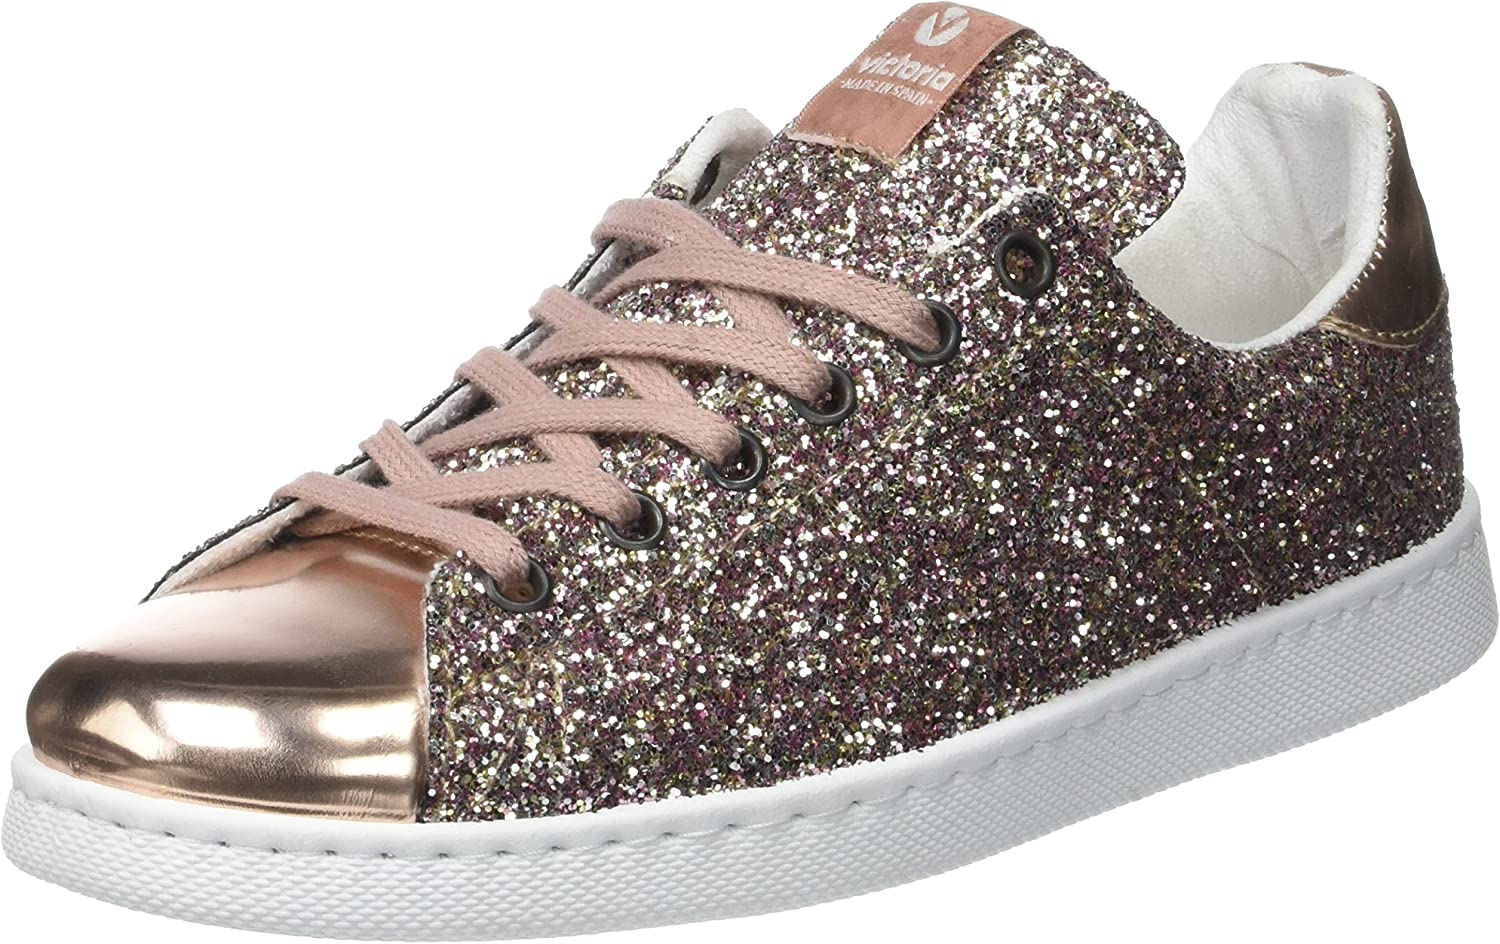 Victoria Deportivo Glitter, Unisex Adults' Low